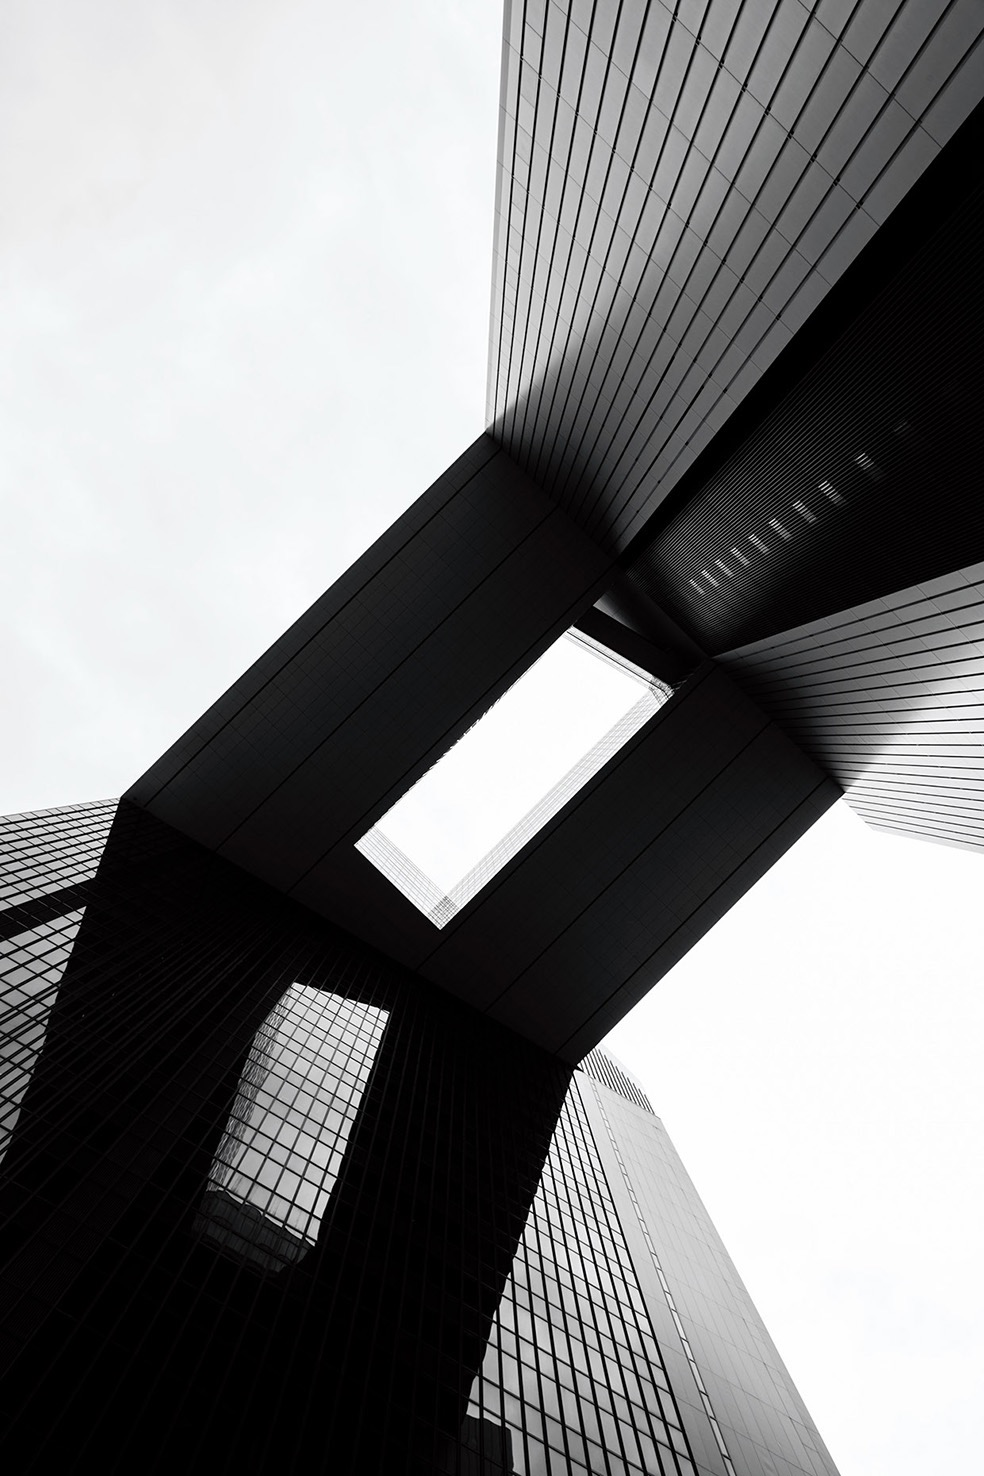 kevin_krautgartner-black_and_white-architecture_photography-photogrvphy_magazine_05